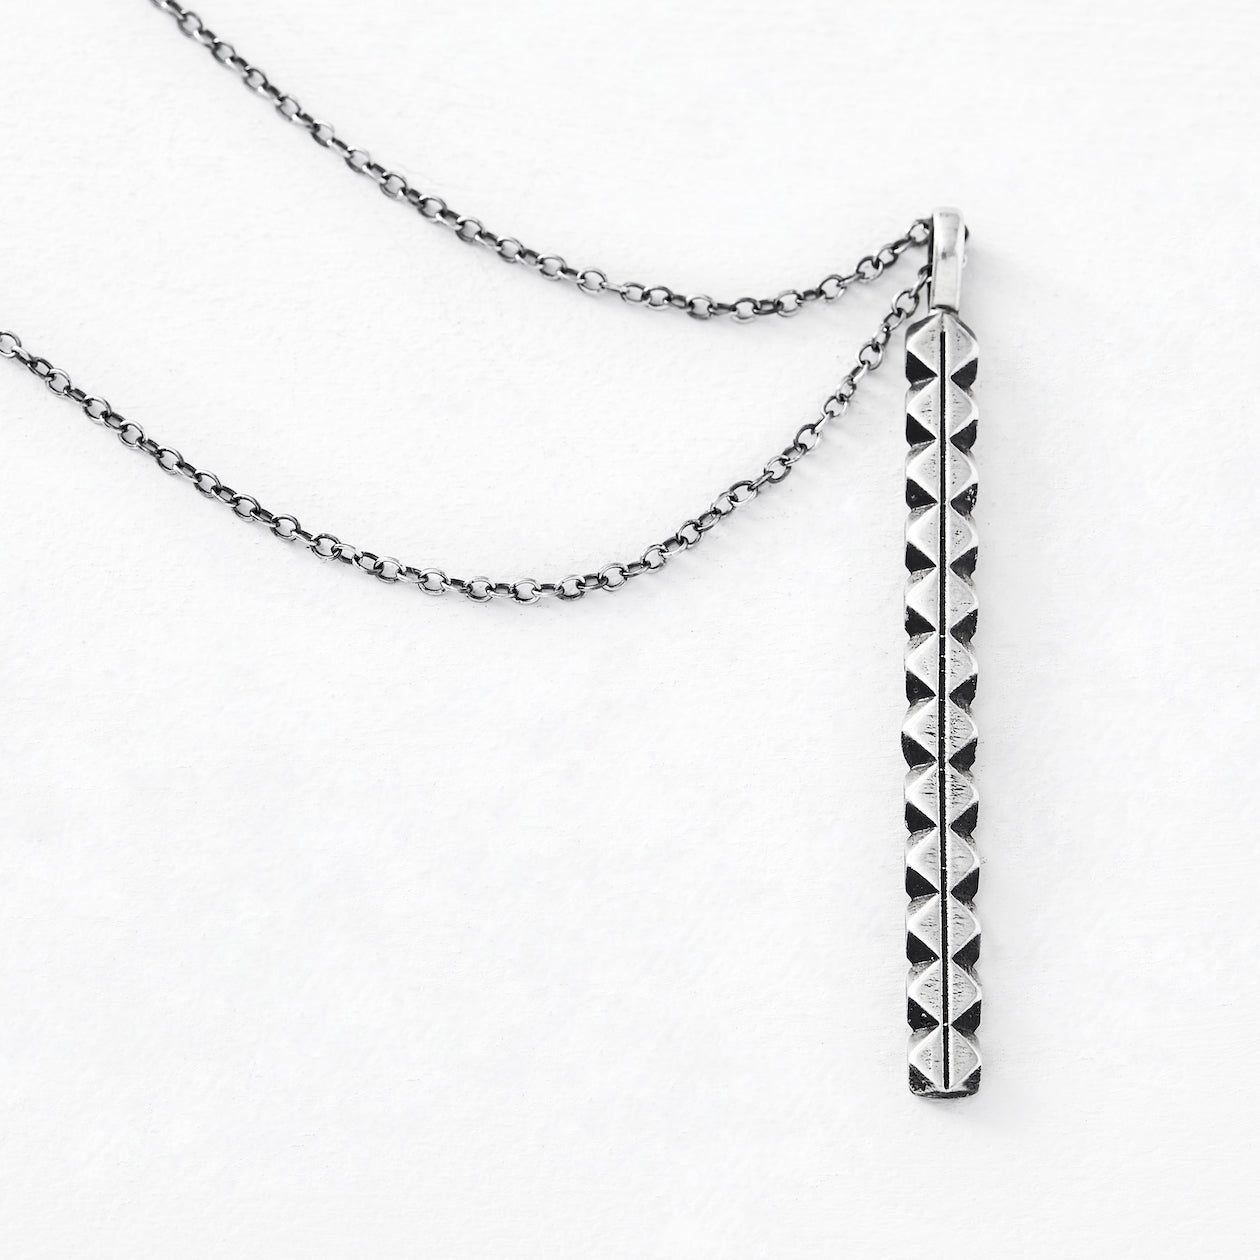 reliance pendant oxidized silver